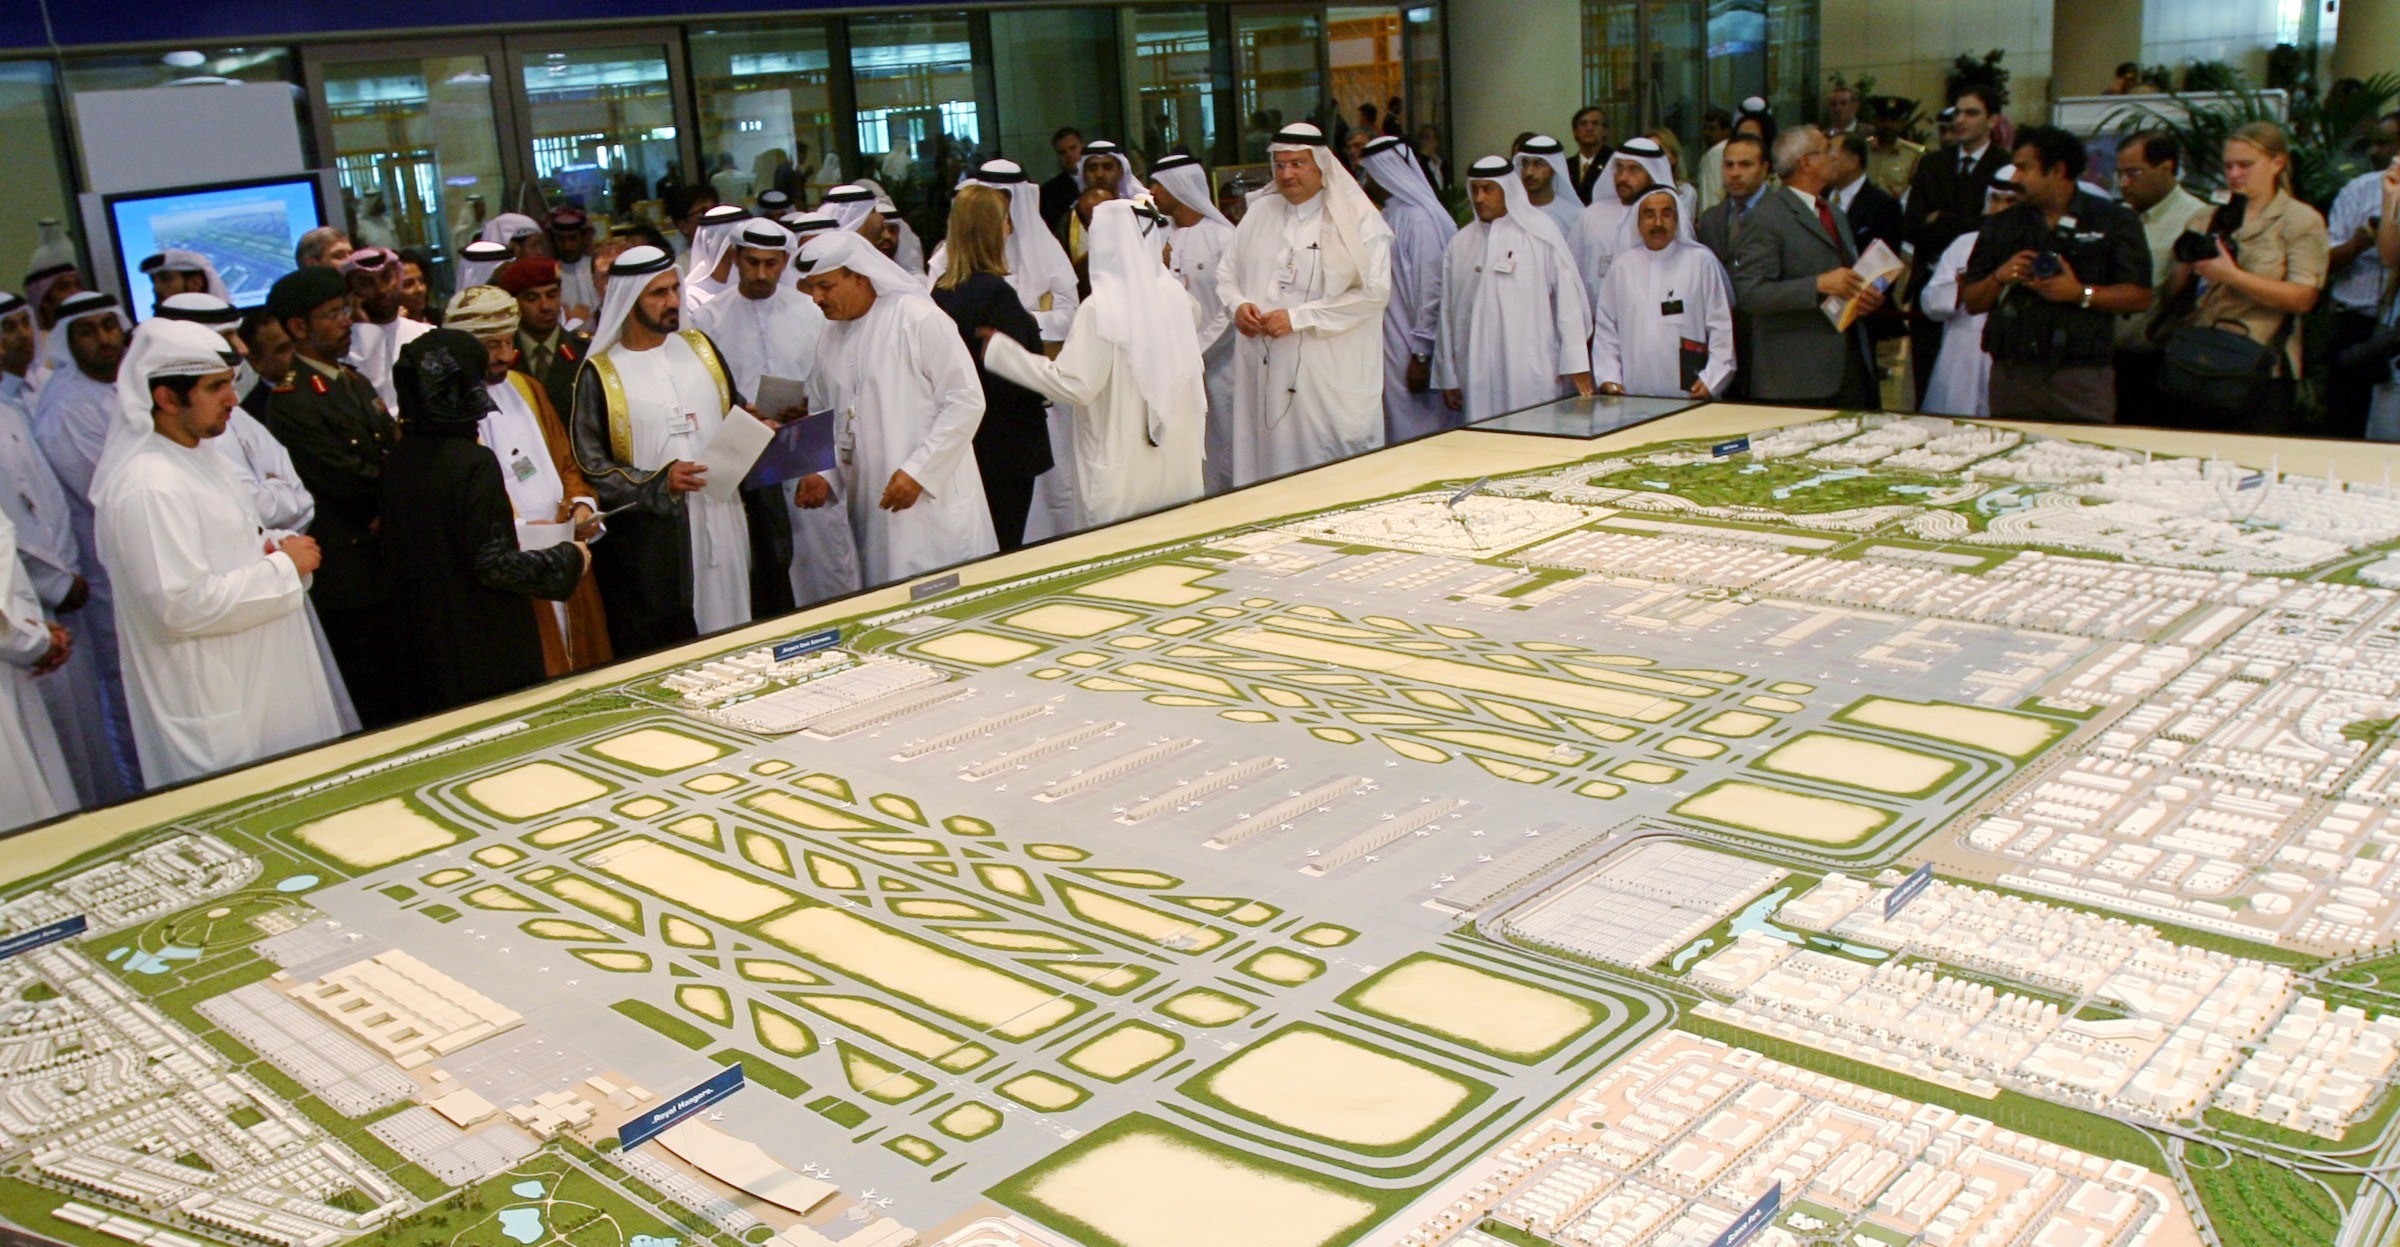 UAE defence minister Sheikh Mohammed looks at model of new Dubai airport at the Dubai Air show